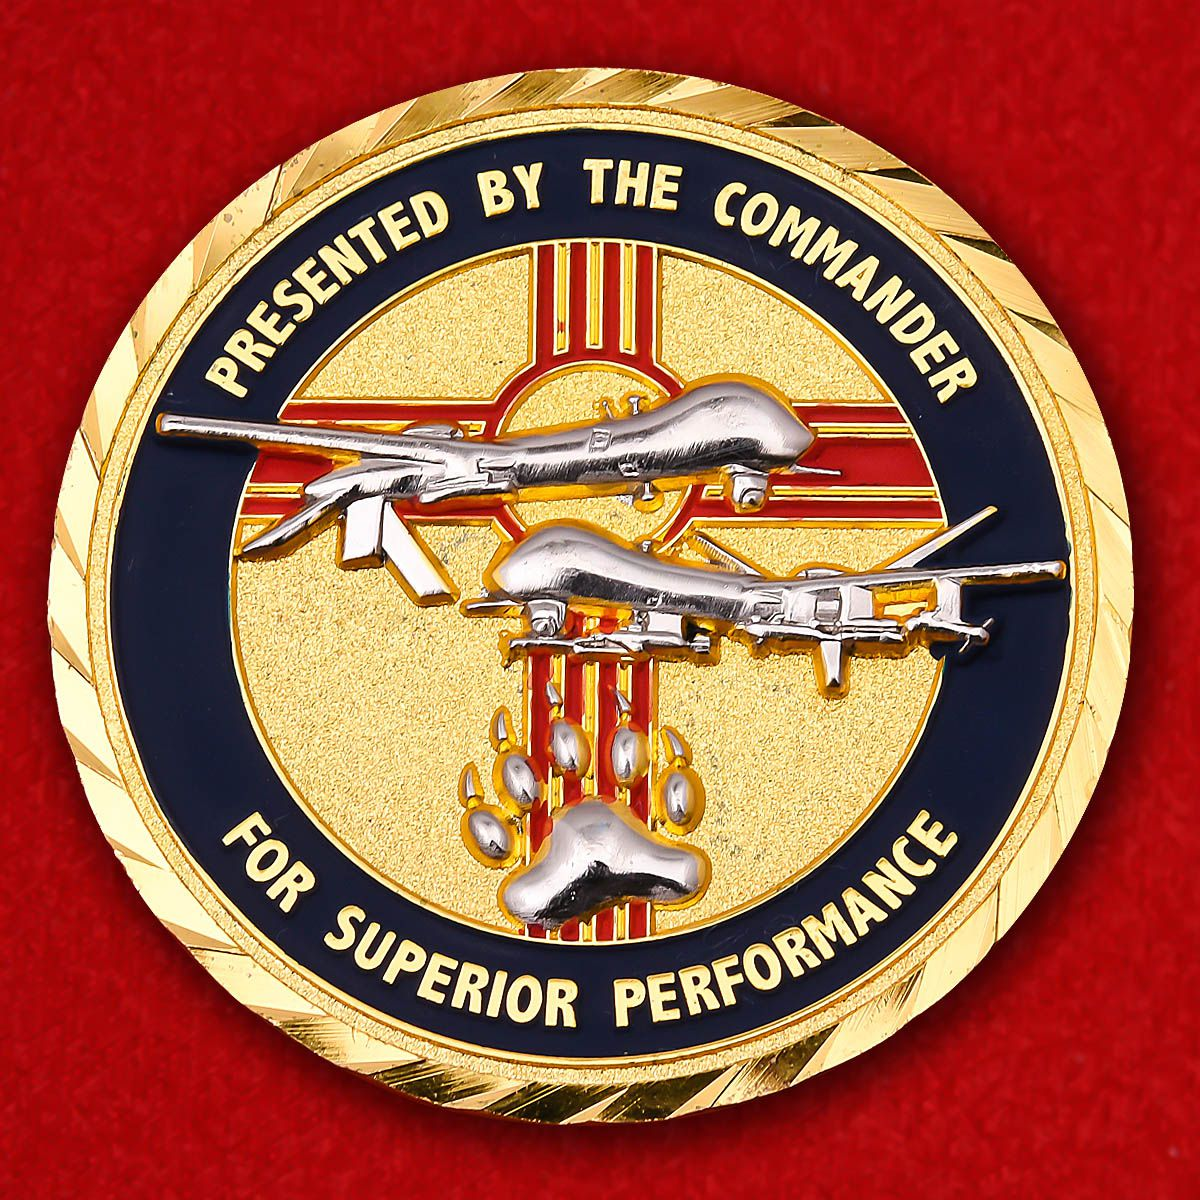 49th Wing Challenge Coin